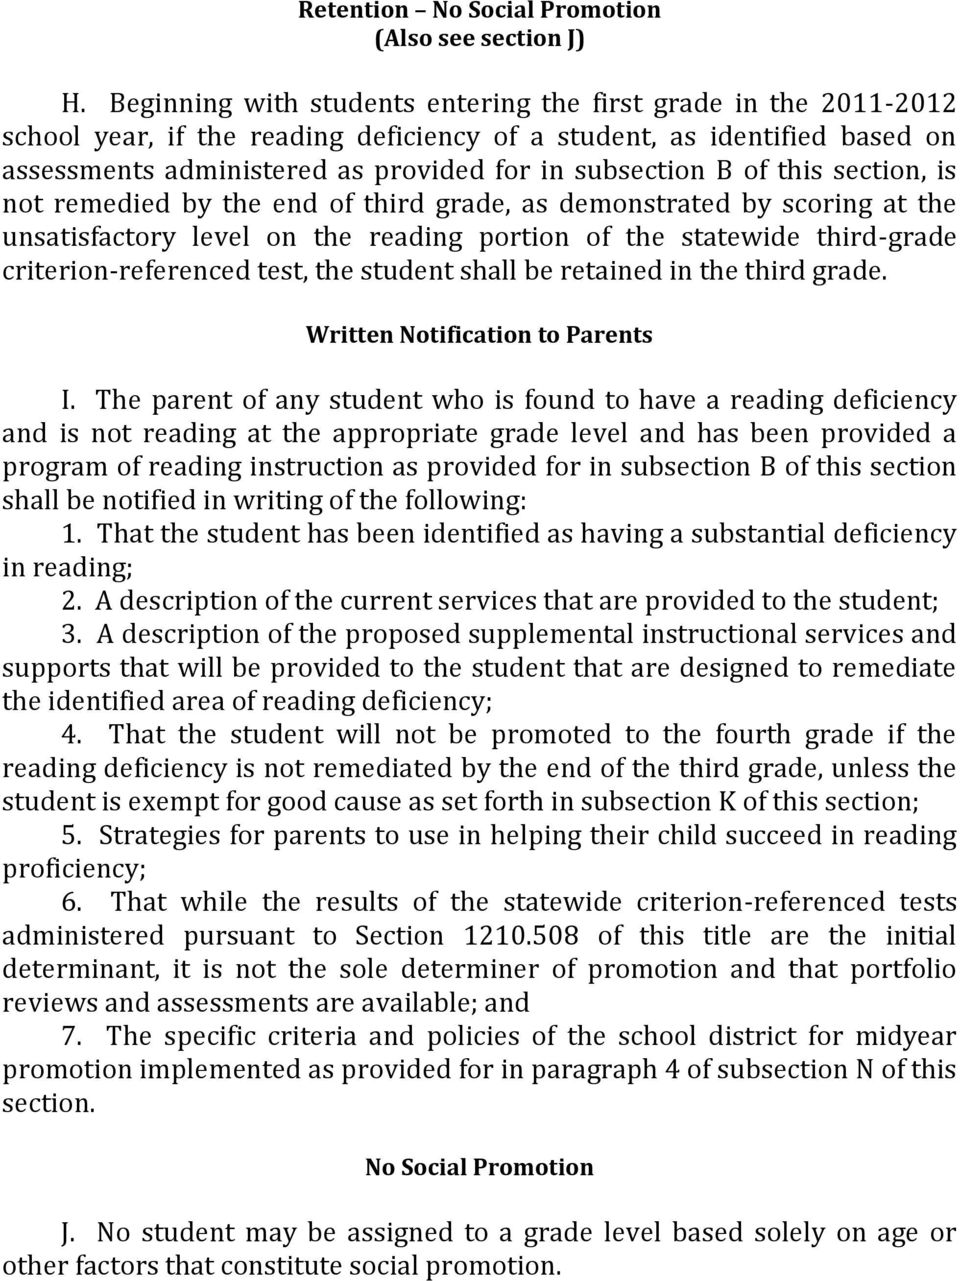 of this section, is not remedied by the end of third grade, as demonstrated by scoring at the unsatisfactory level on the reading portion of the statewide third-grade criterion-referenced test, the